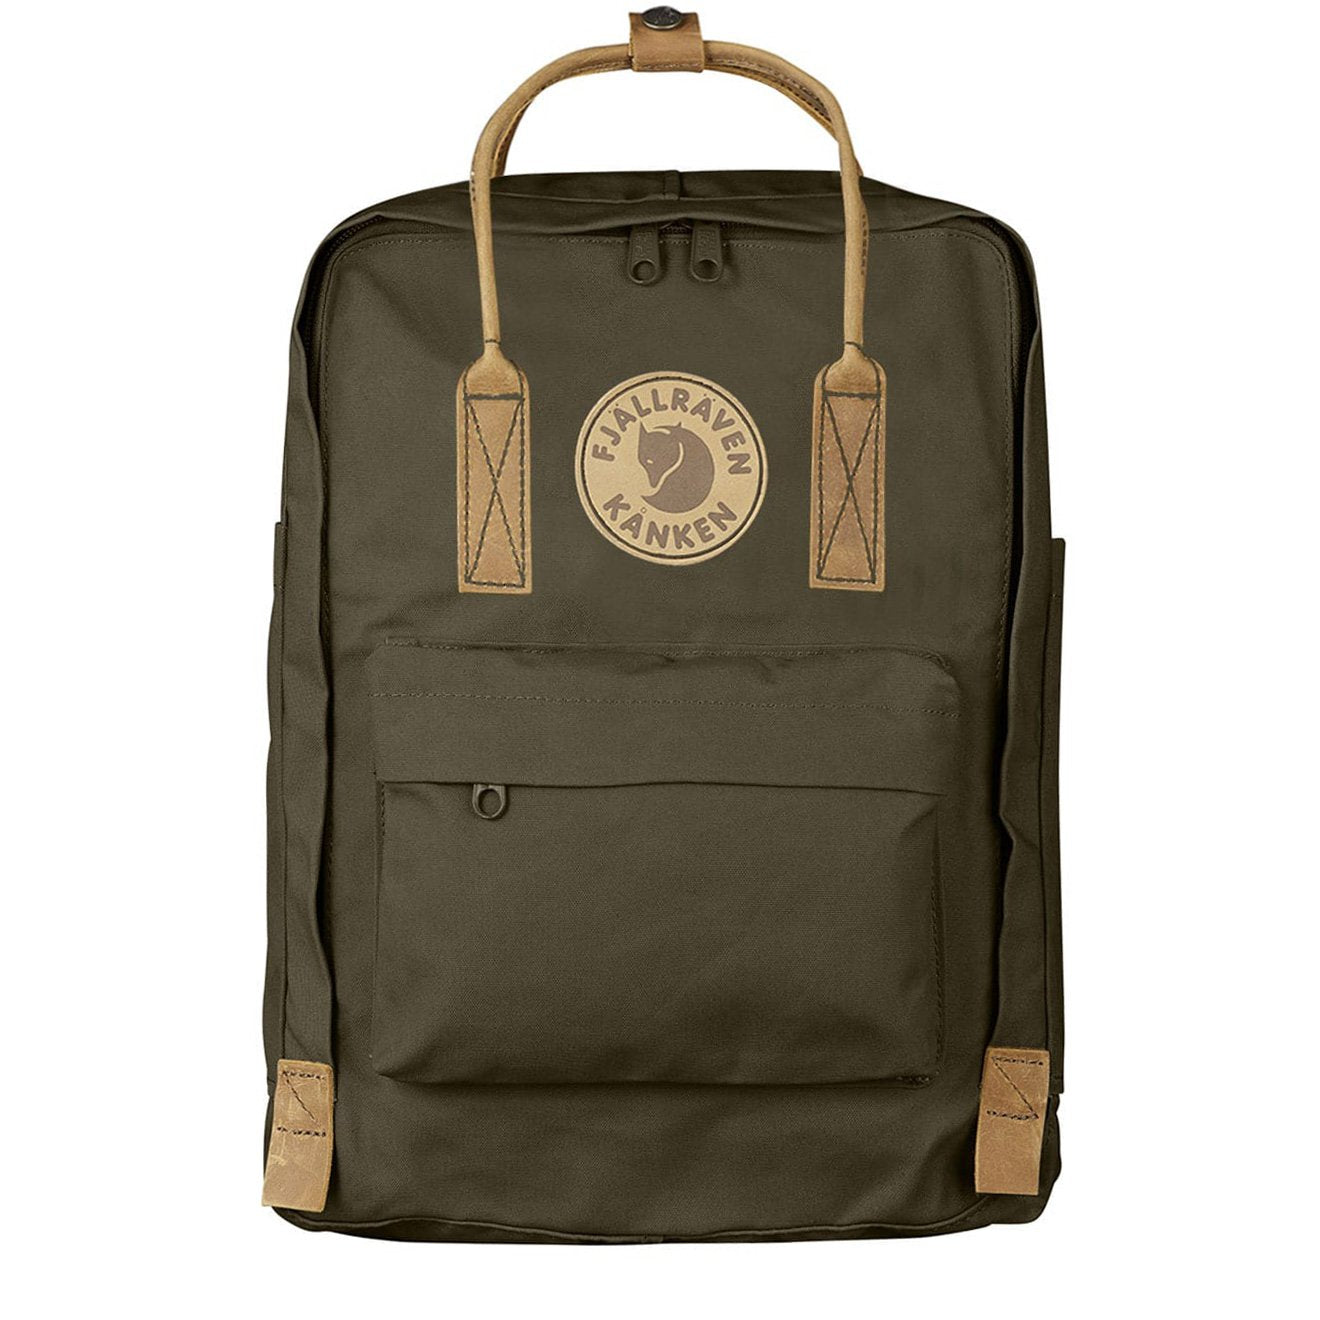 6060b8323 Fjallraven Kanken No 2 Laptop Dark Olive | My Kånken Bag